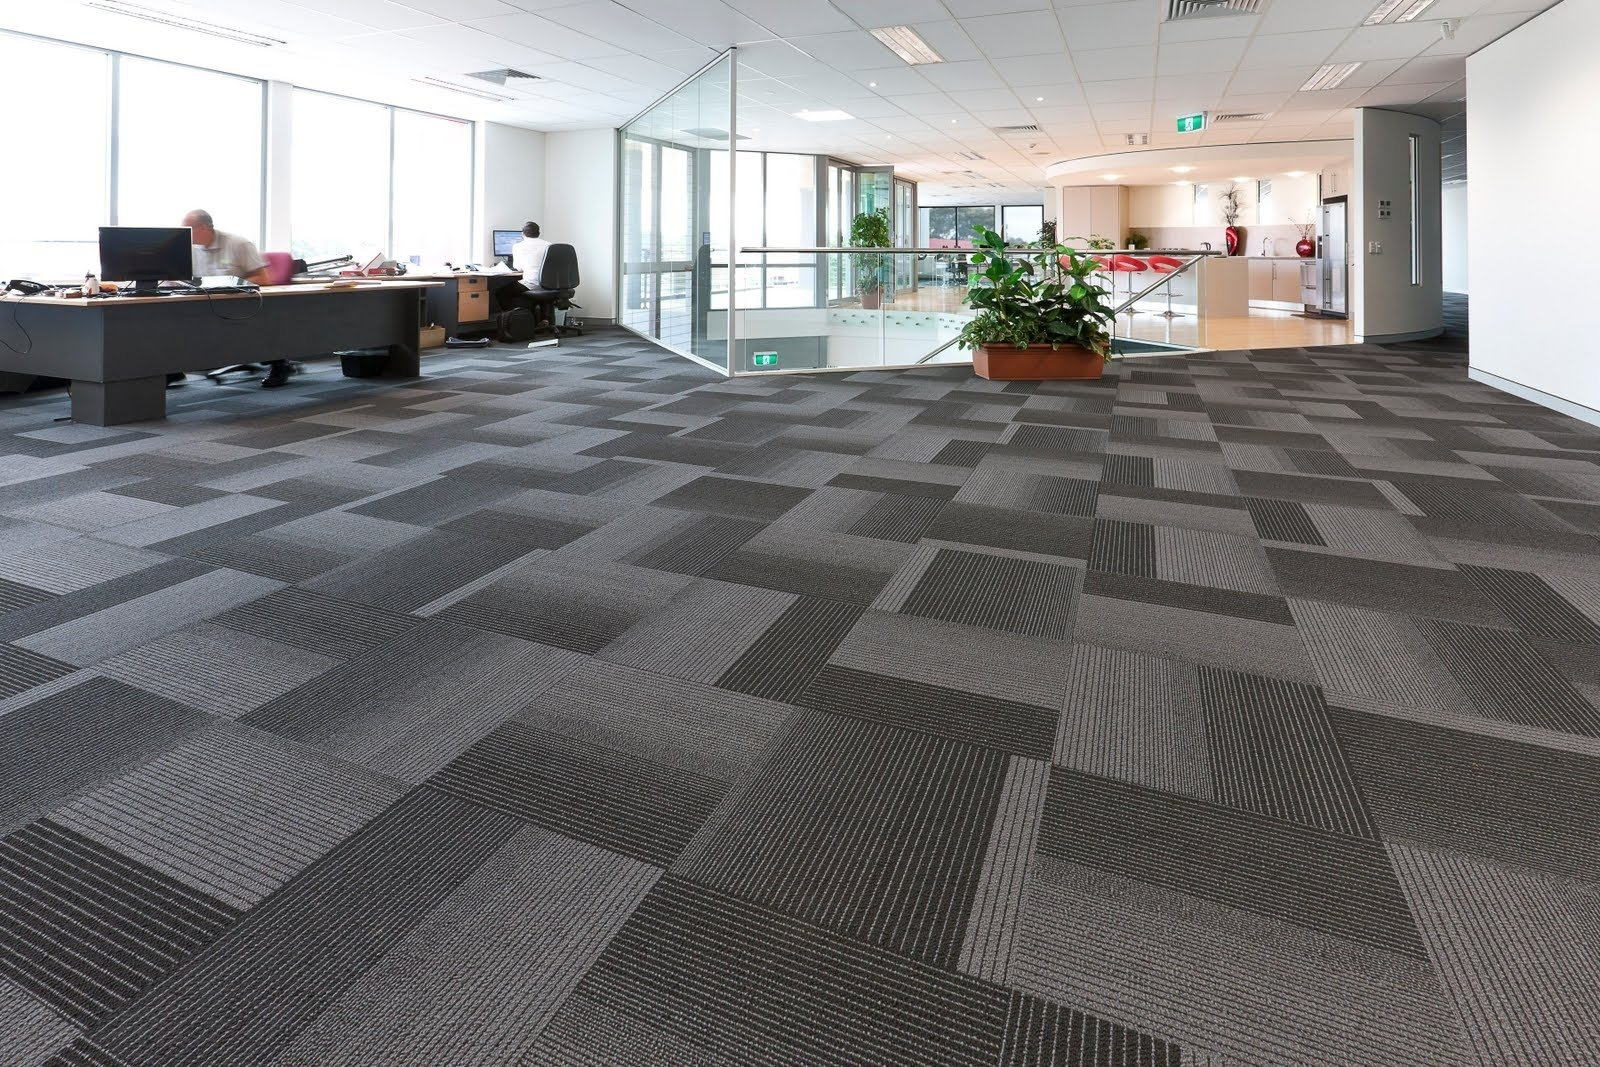 10 Fashionable Wall To Wall Carpet Ideas wide office space with dark grey and silver wall to wall carpet 2020